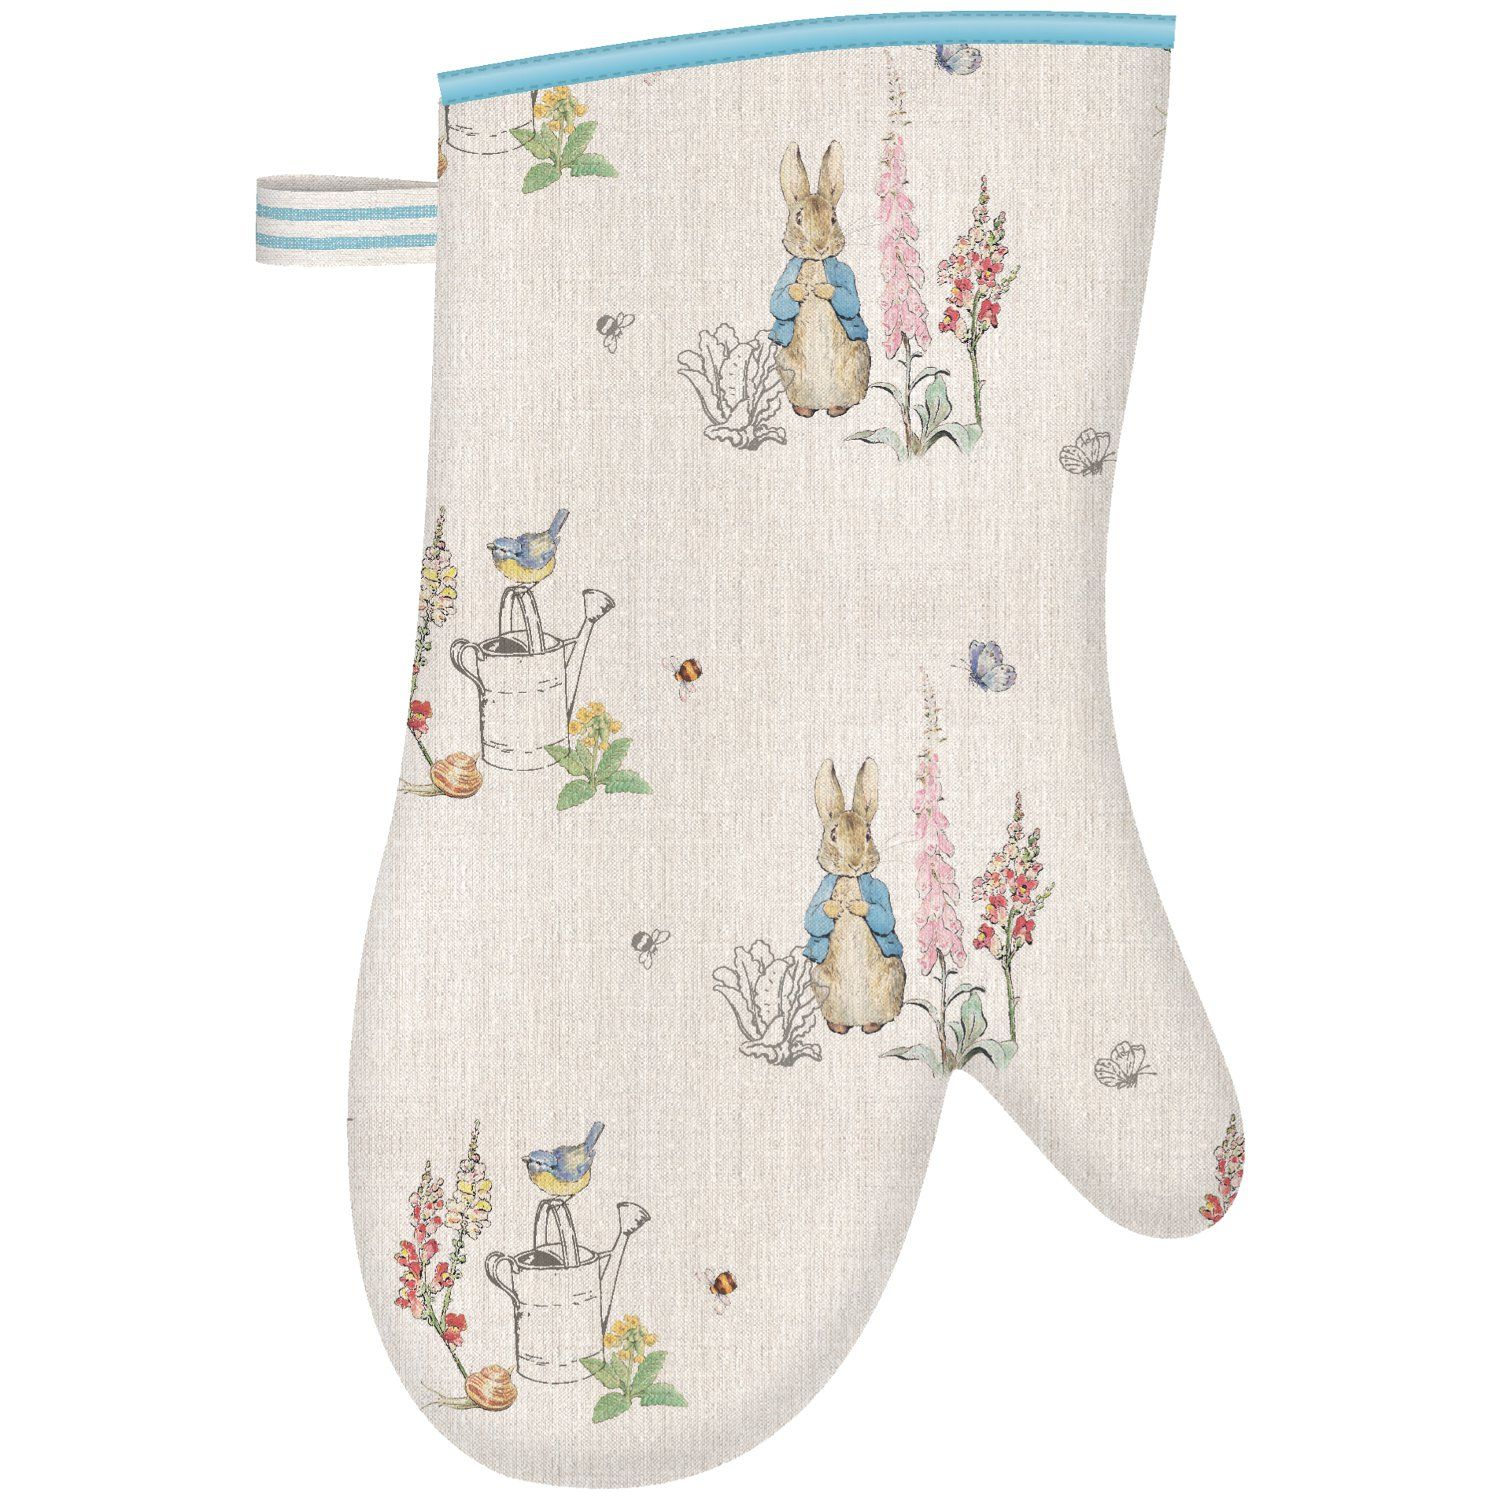 Peter Rabbit Peter Rabbit Classic Single Oven Glove